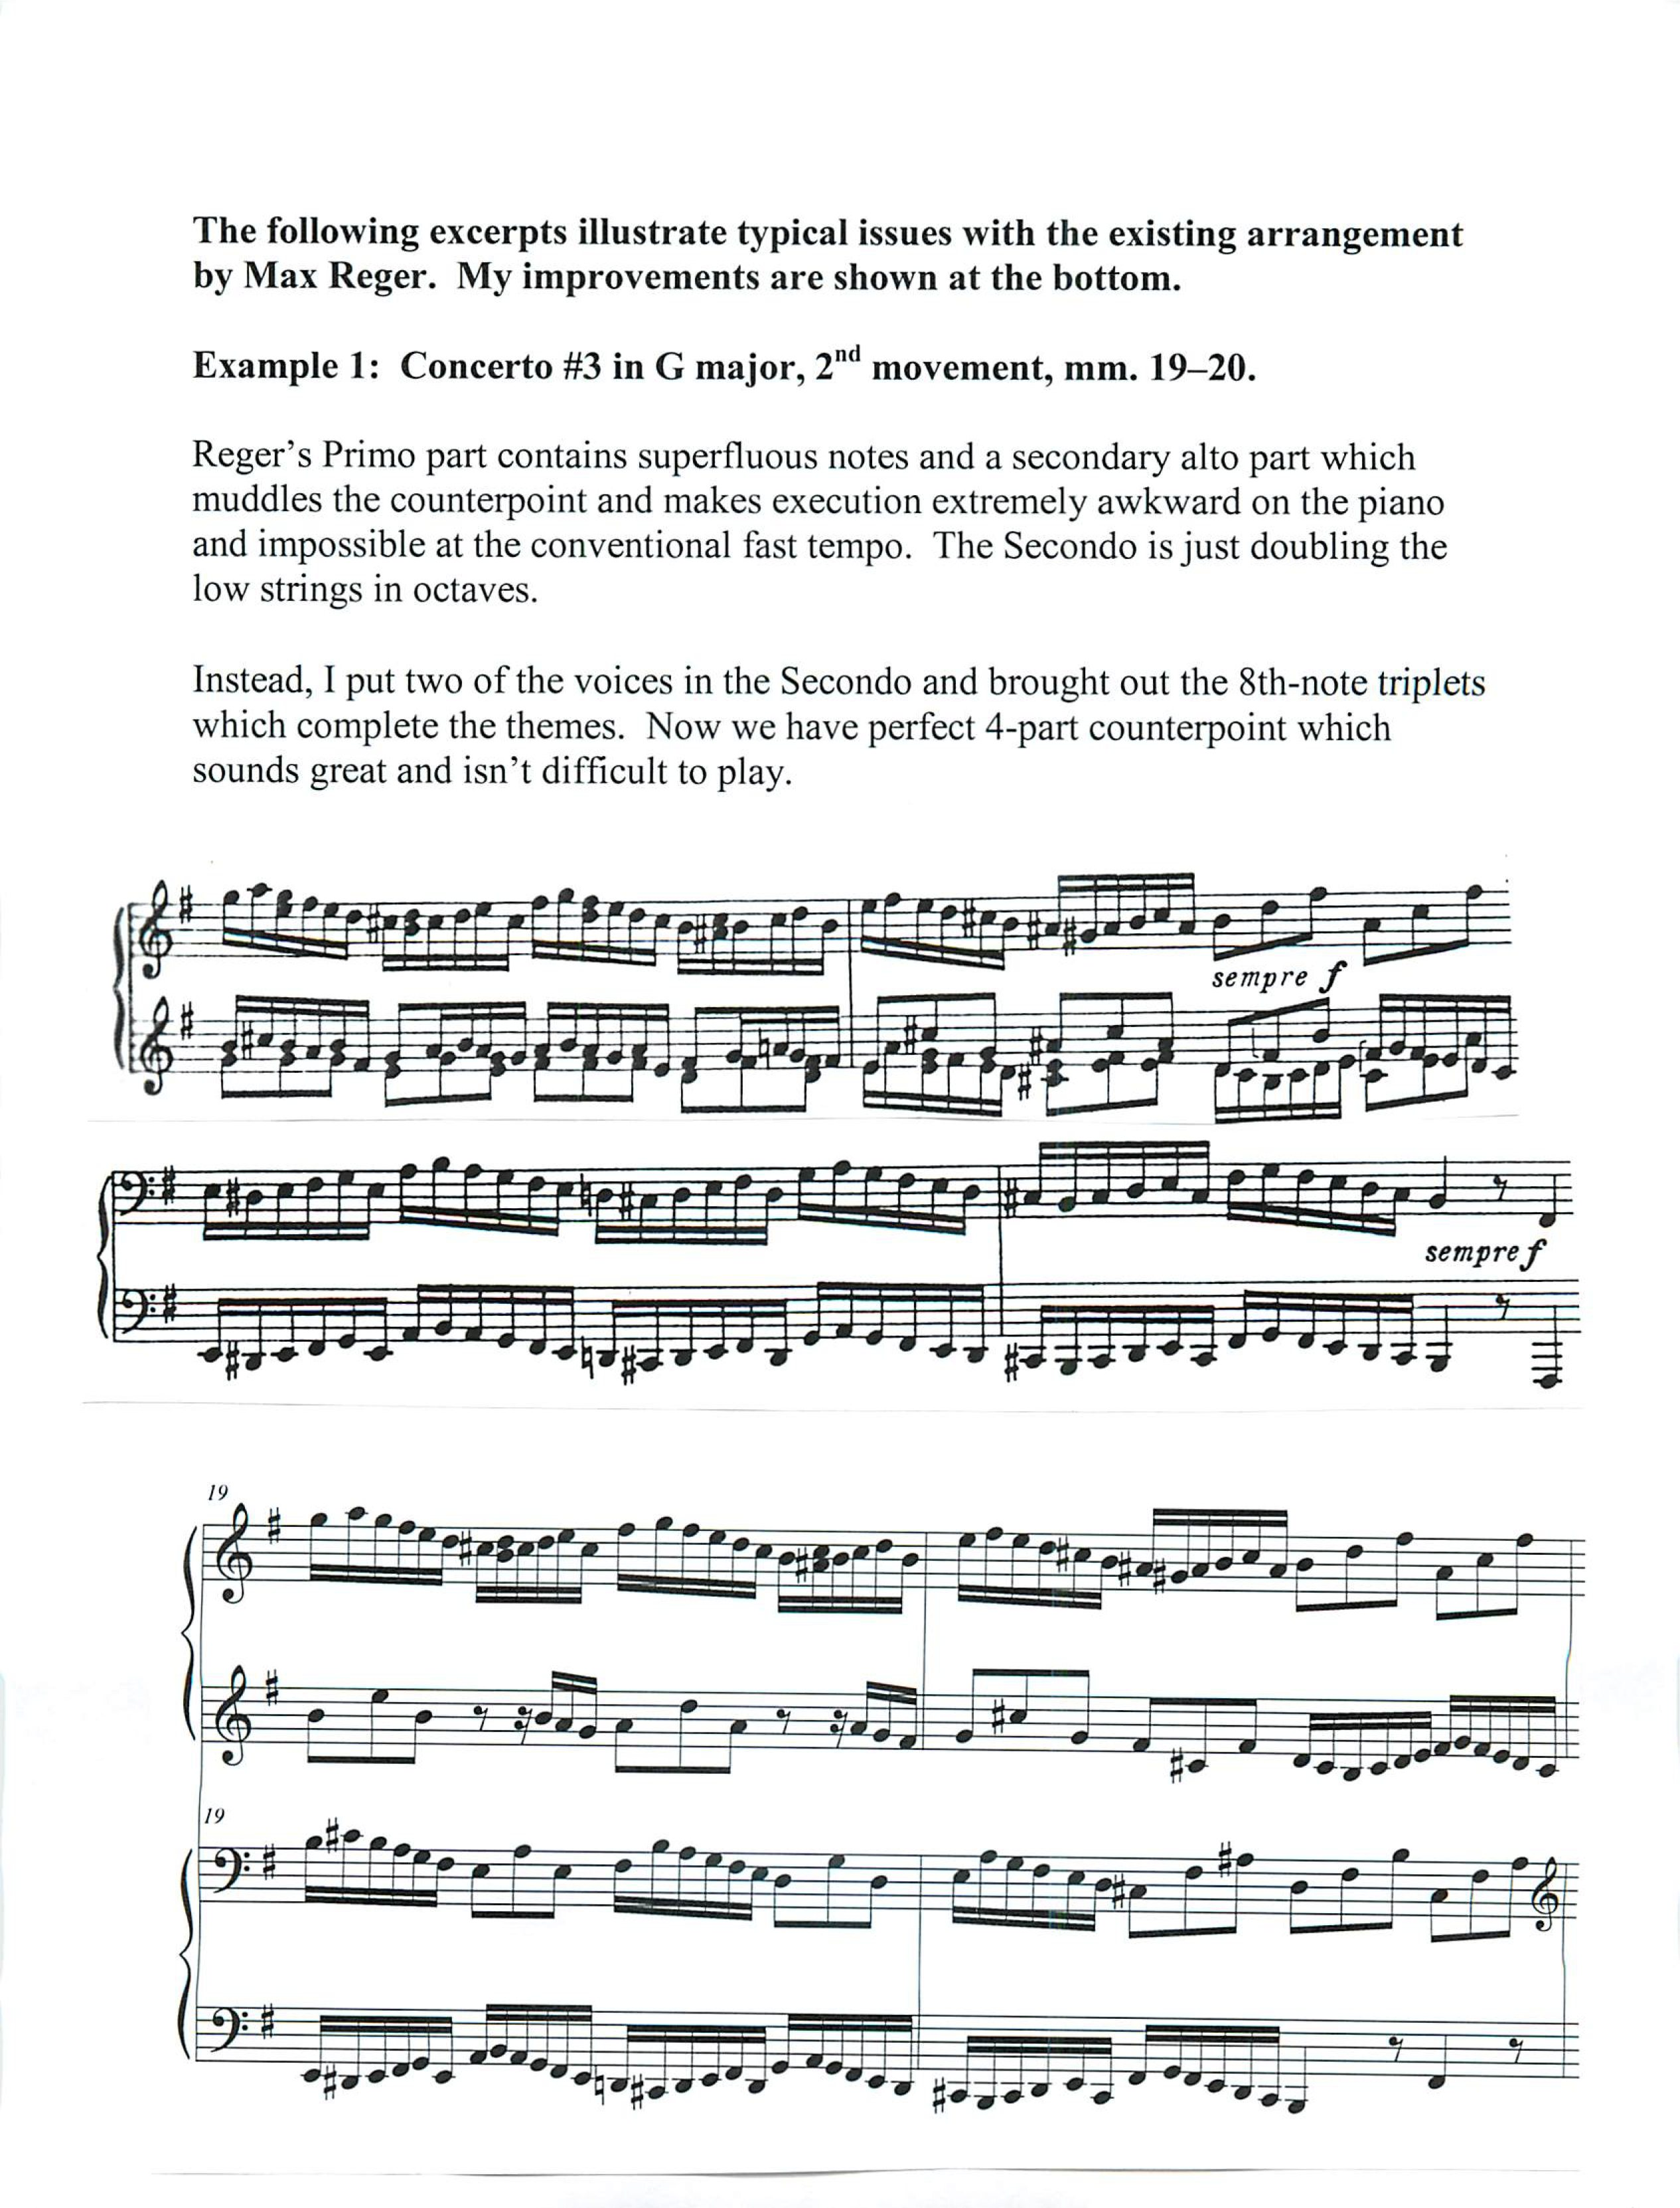 Example 1: Concerto #3 in G major, 2nd movement, mm. 19-20.